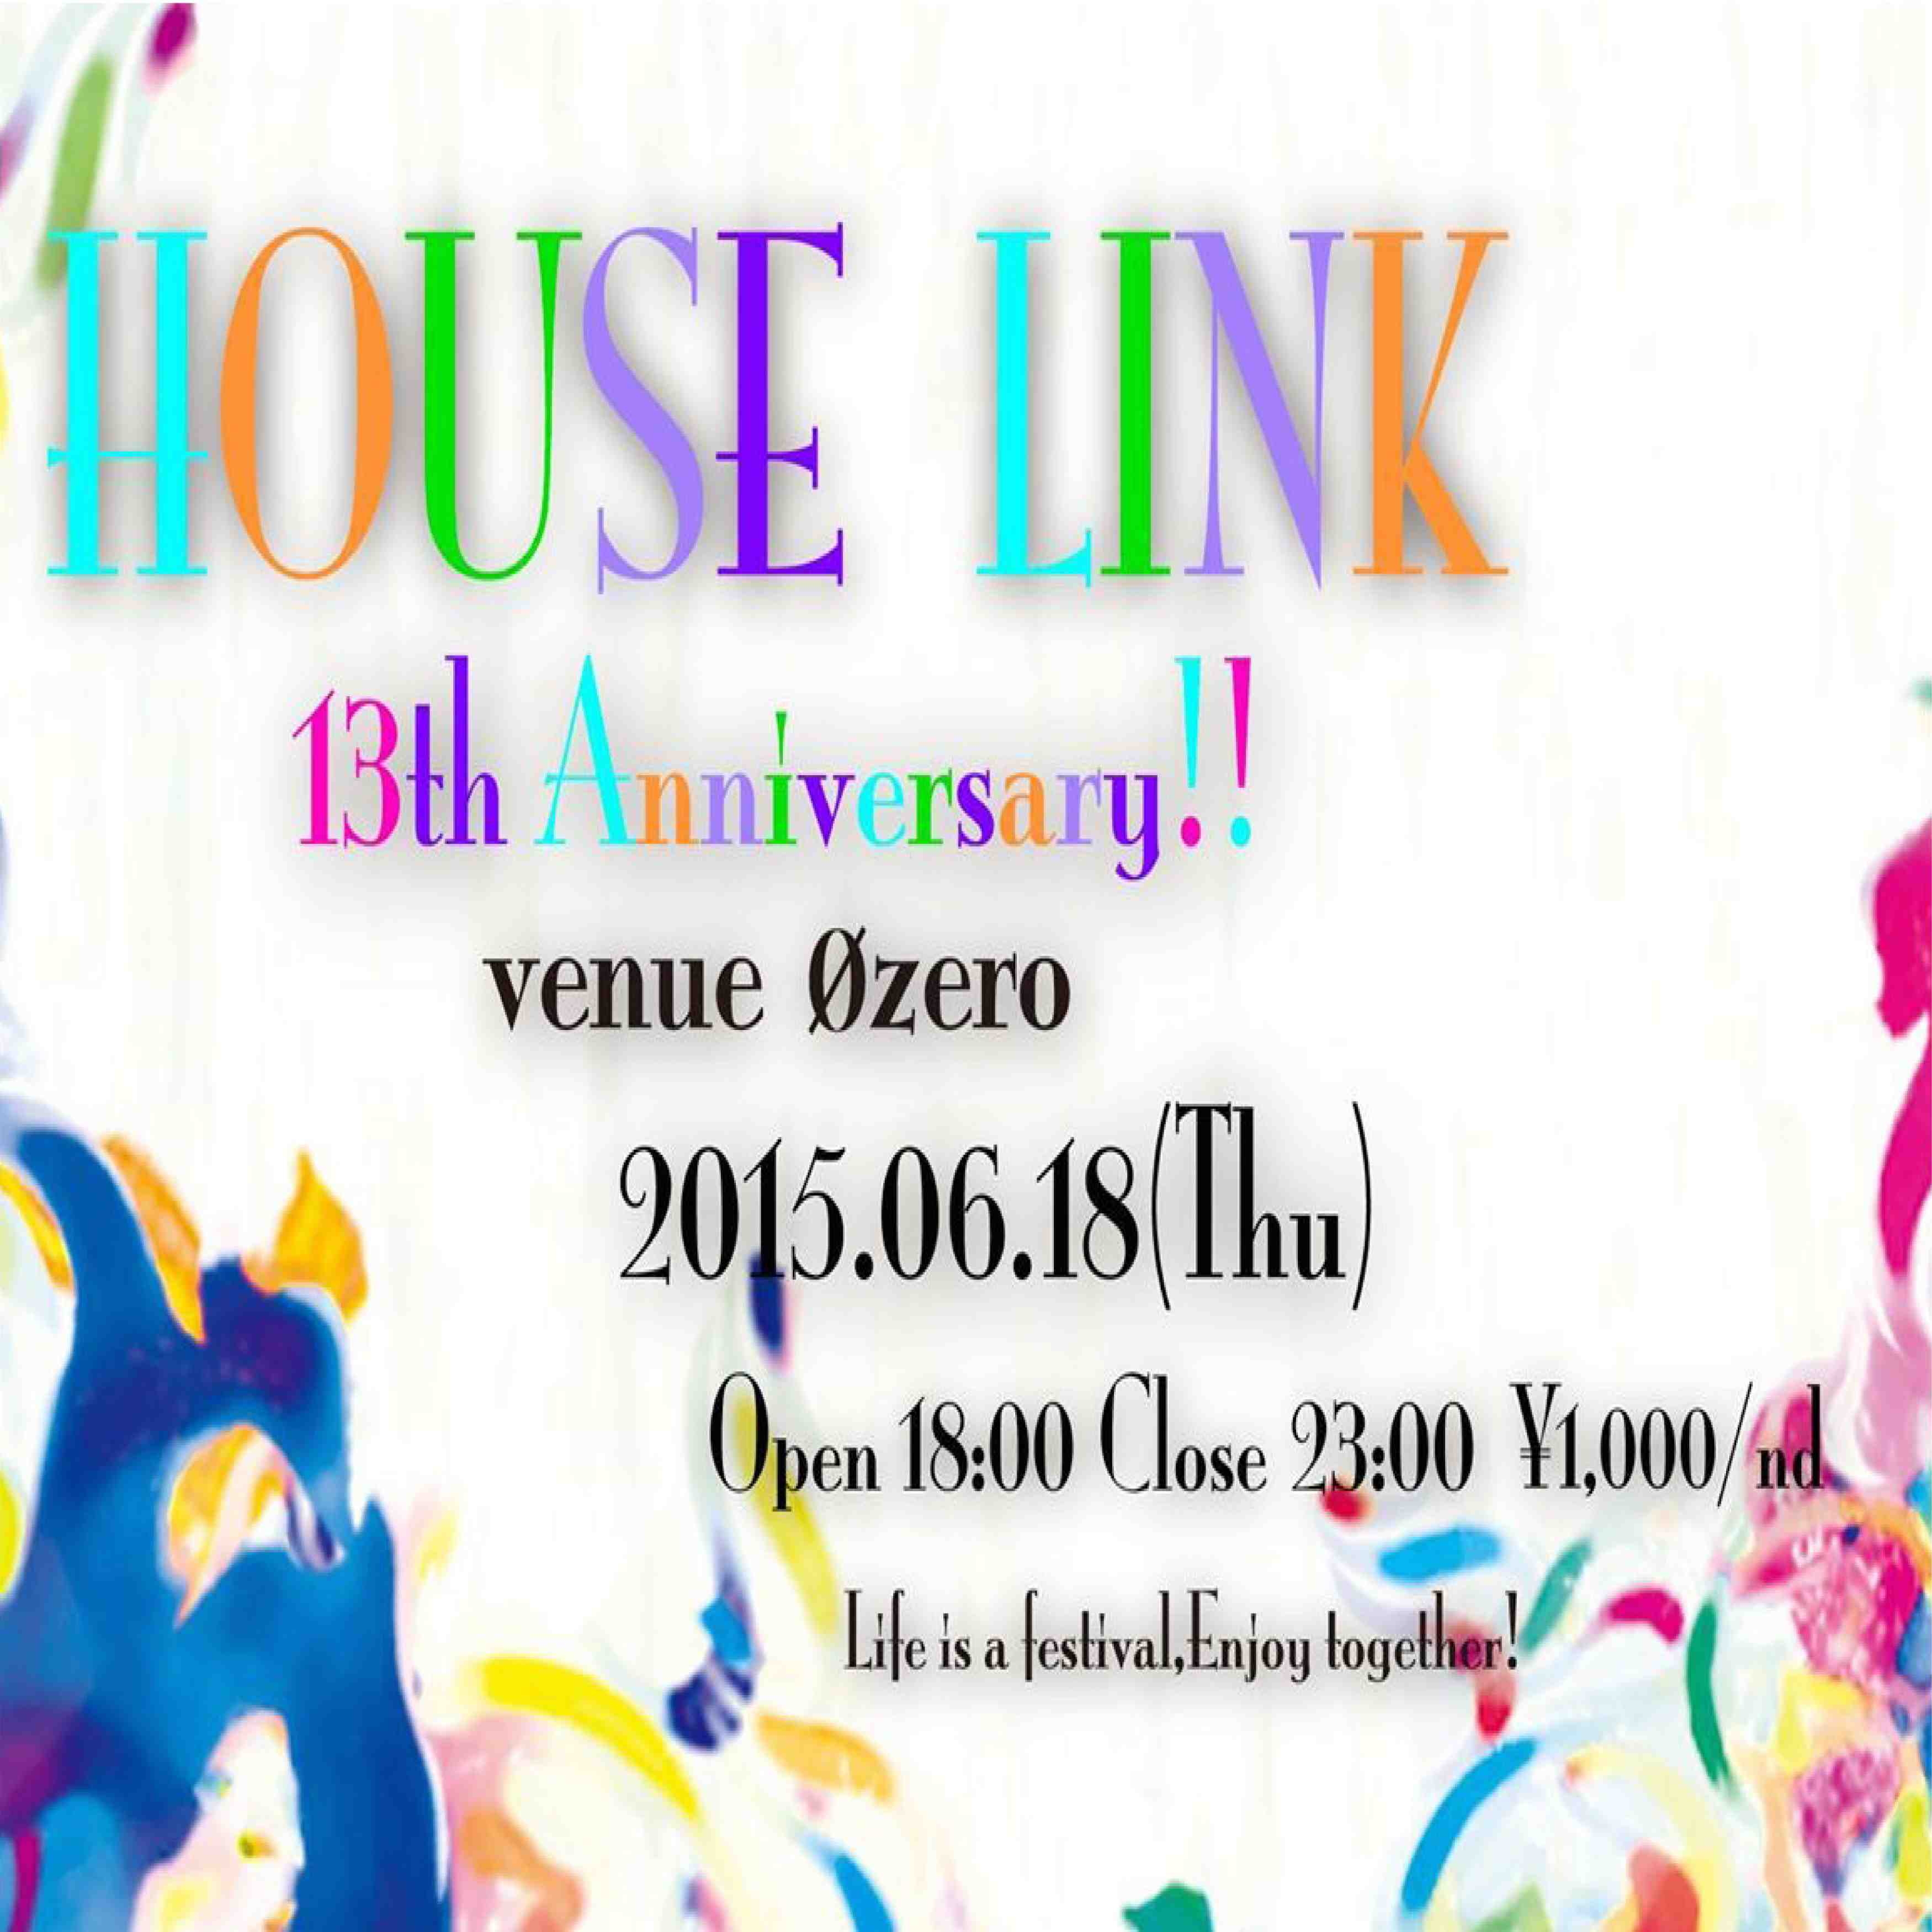 HOUSE LINK 〜13thAnniversary!!!!!!!!〜